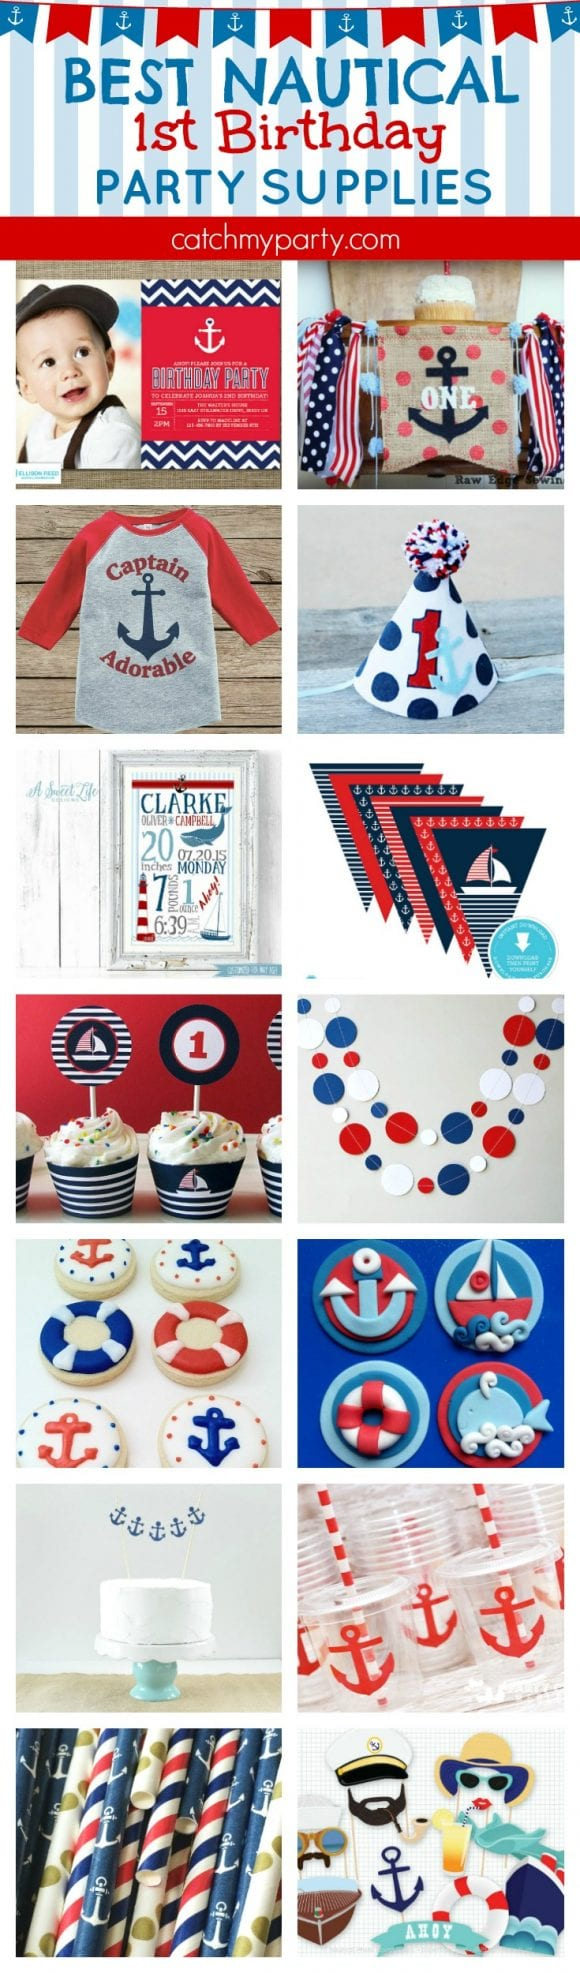 Best nautical 1st birthday party supplies | CatchMyparty.com